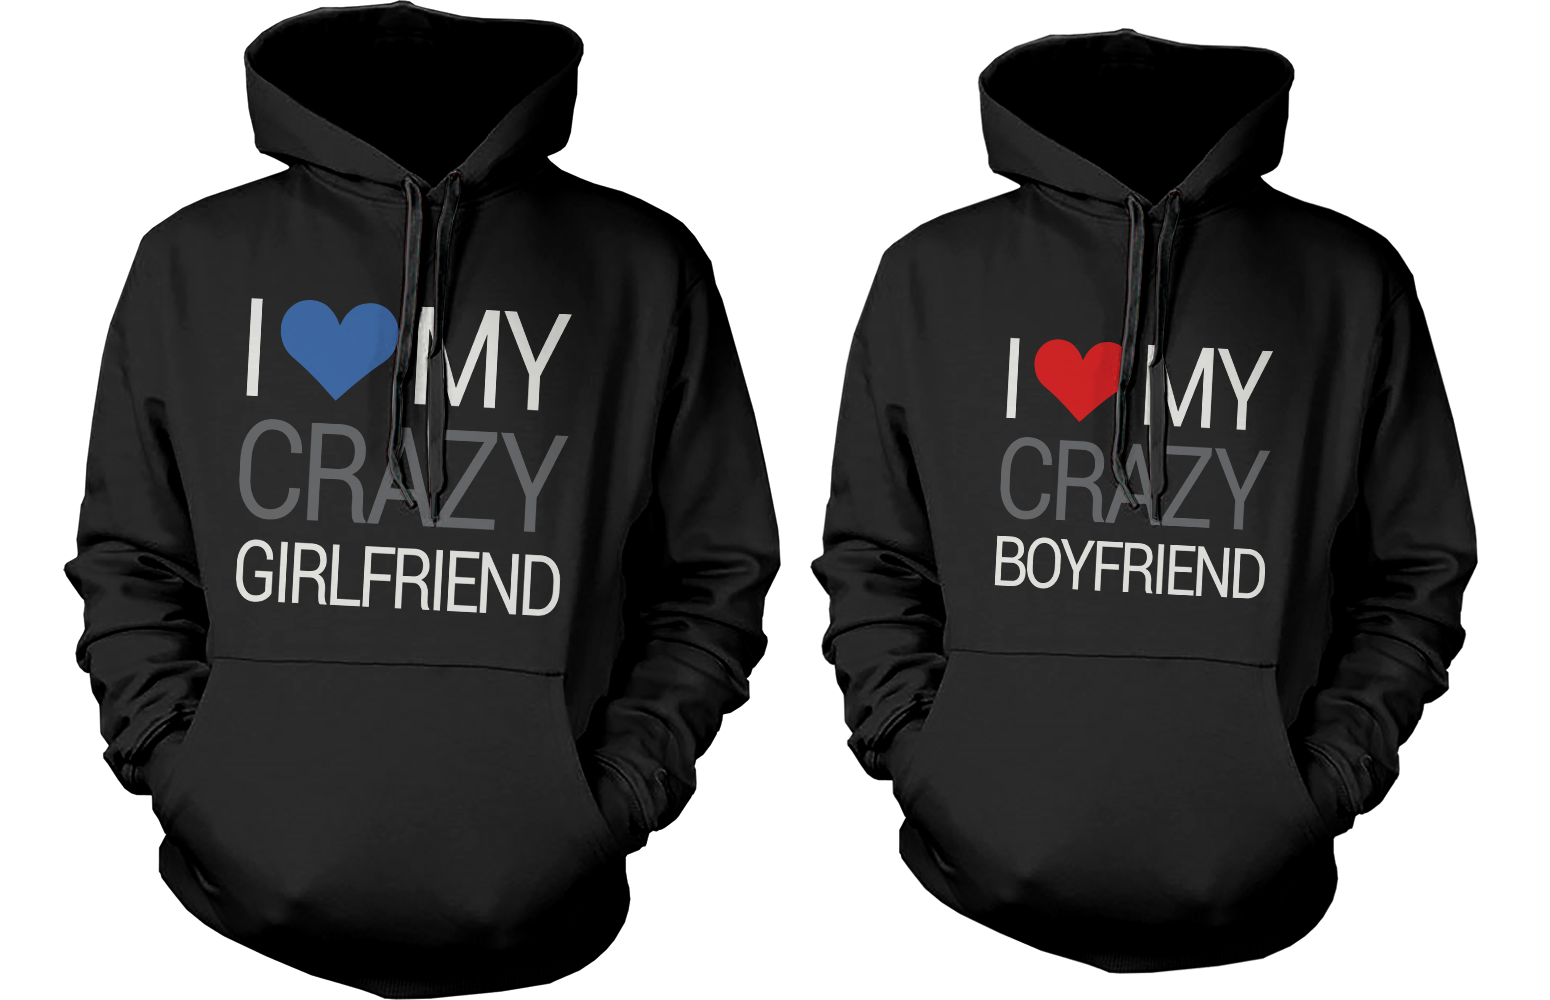 I Love My Crazy Girlfriend And Boyfriend Couple Hoodies 365 In